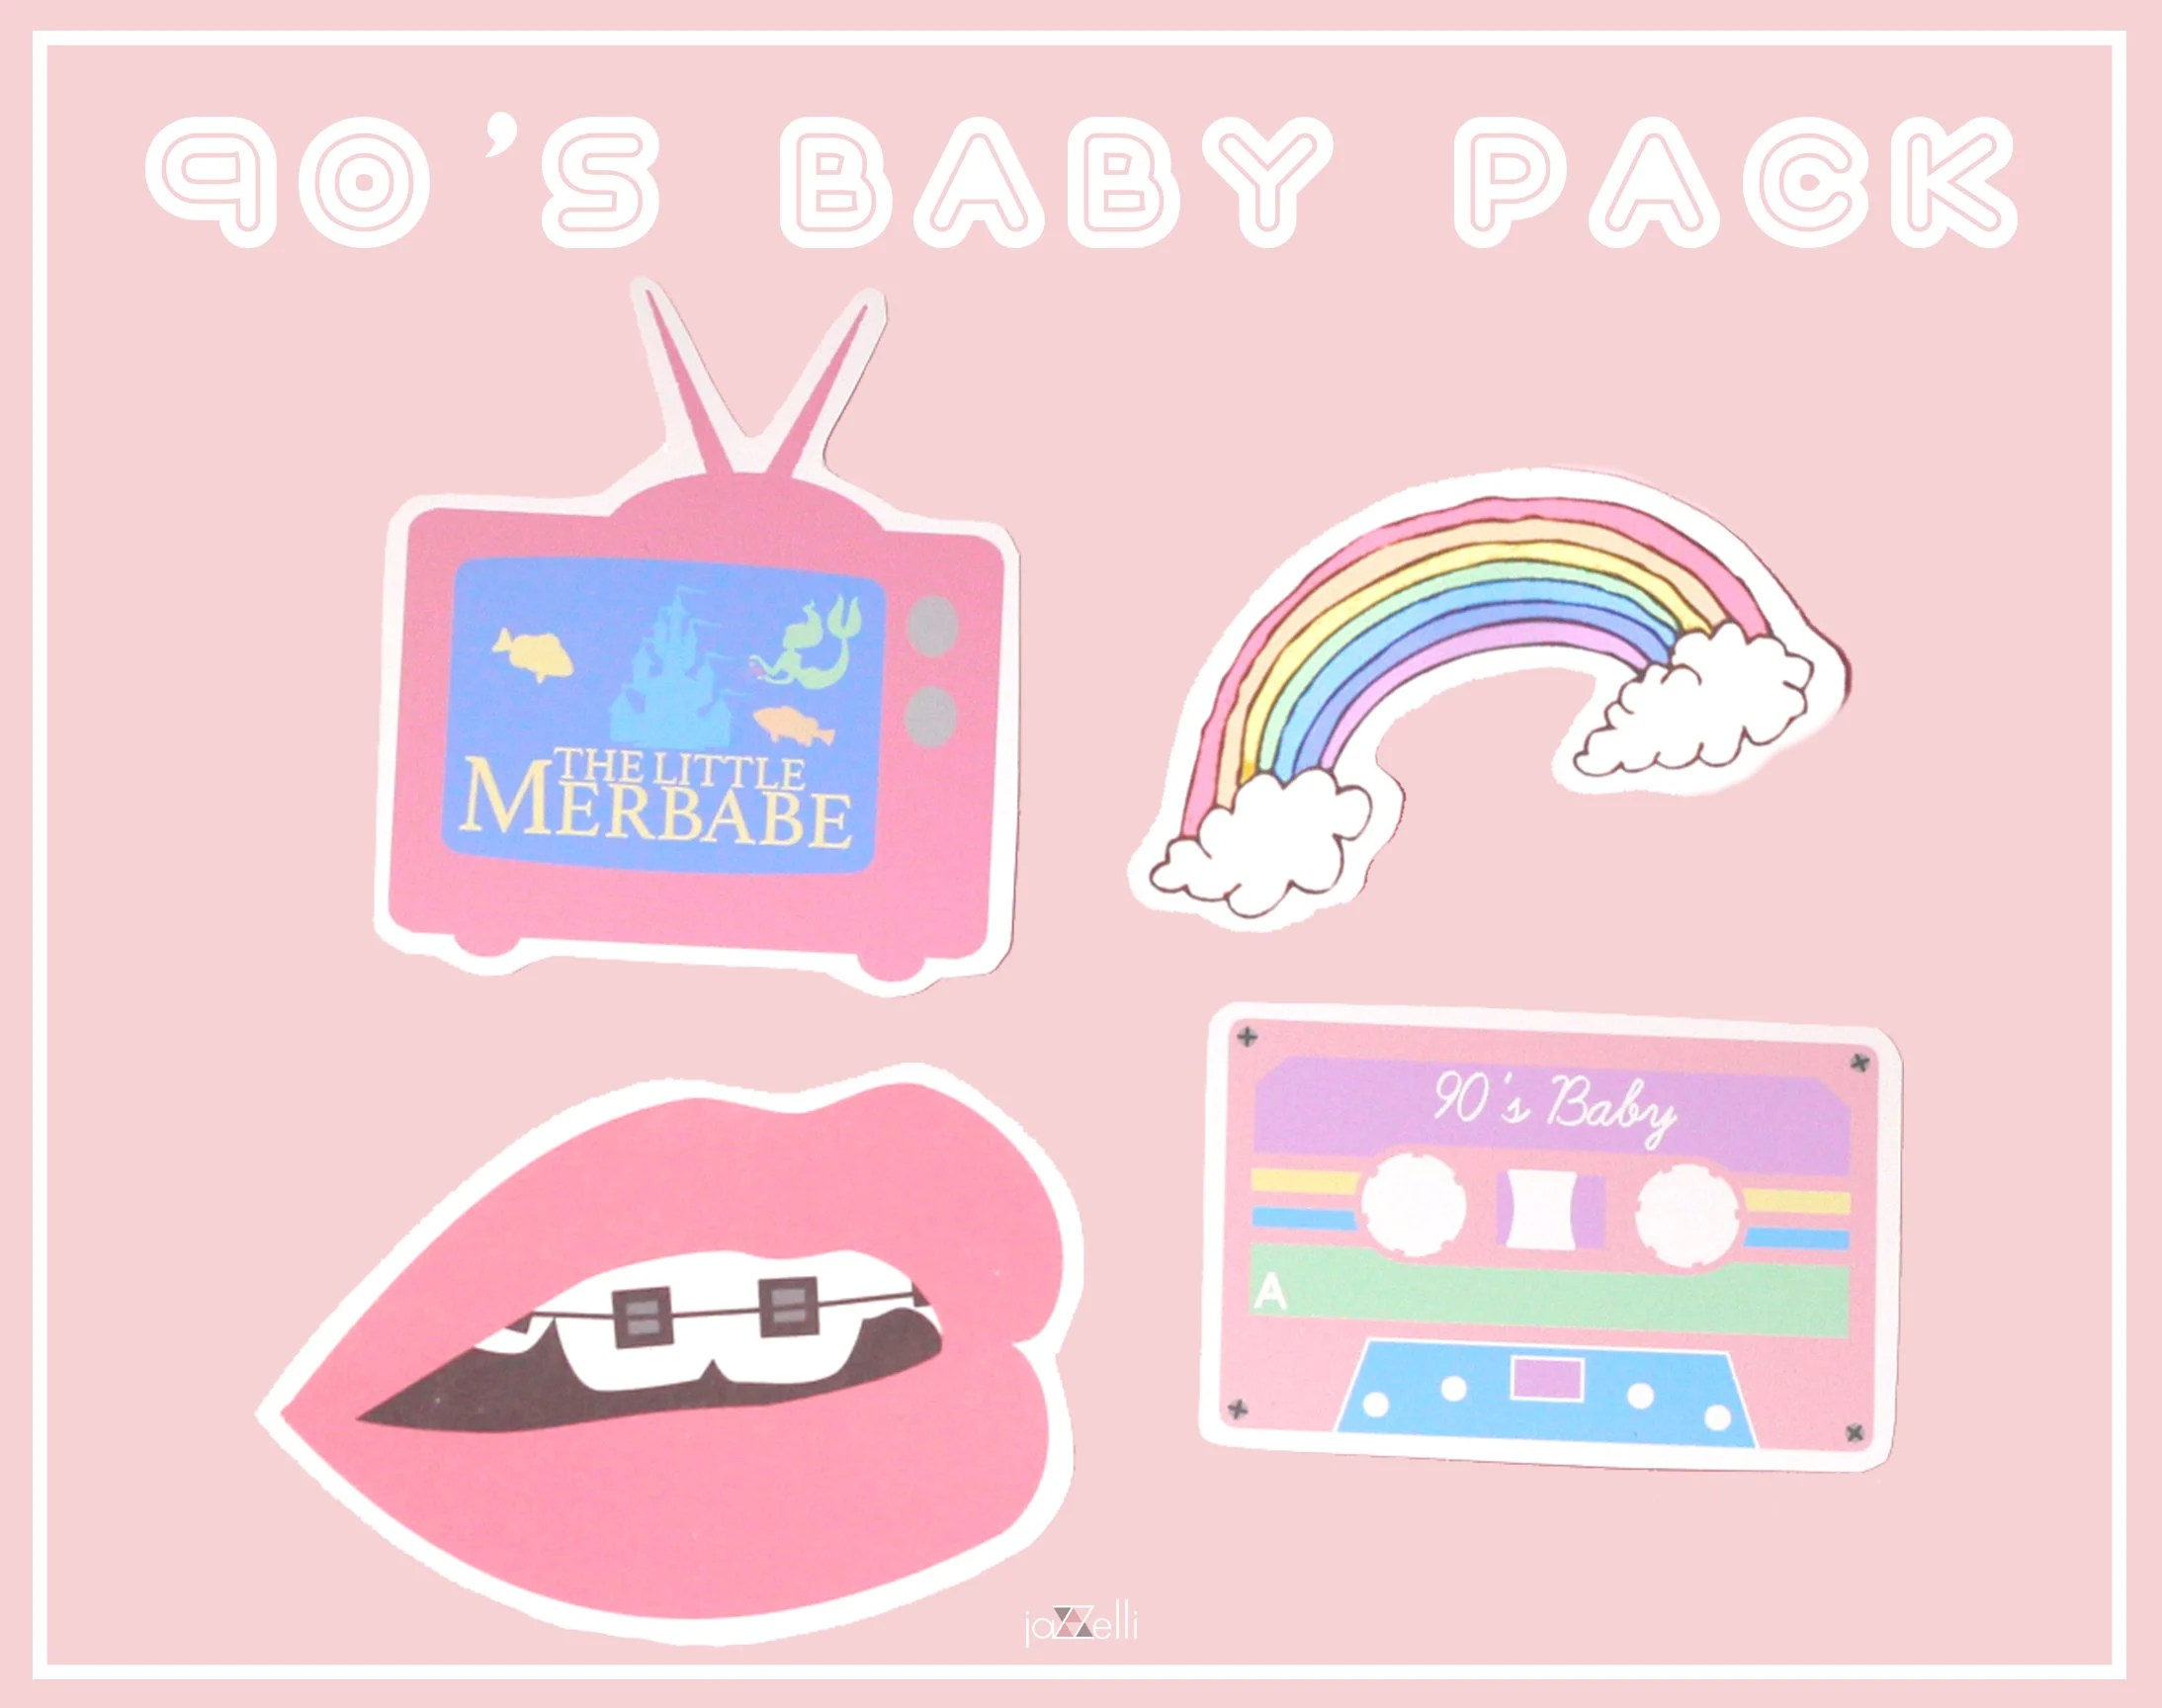 Tumblr Sticker Pastel Tumblr Sticker Pack 21 Stickers Cute Pastel Internet Art